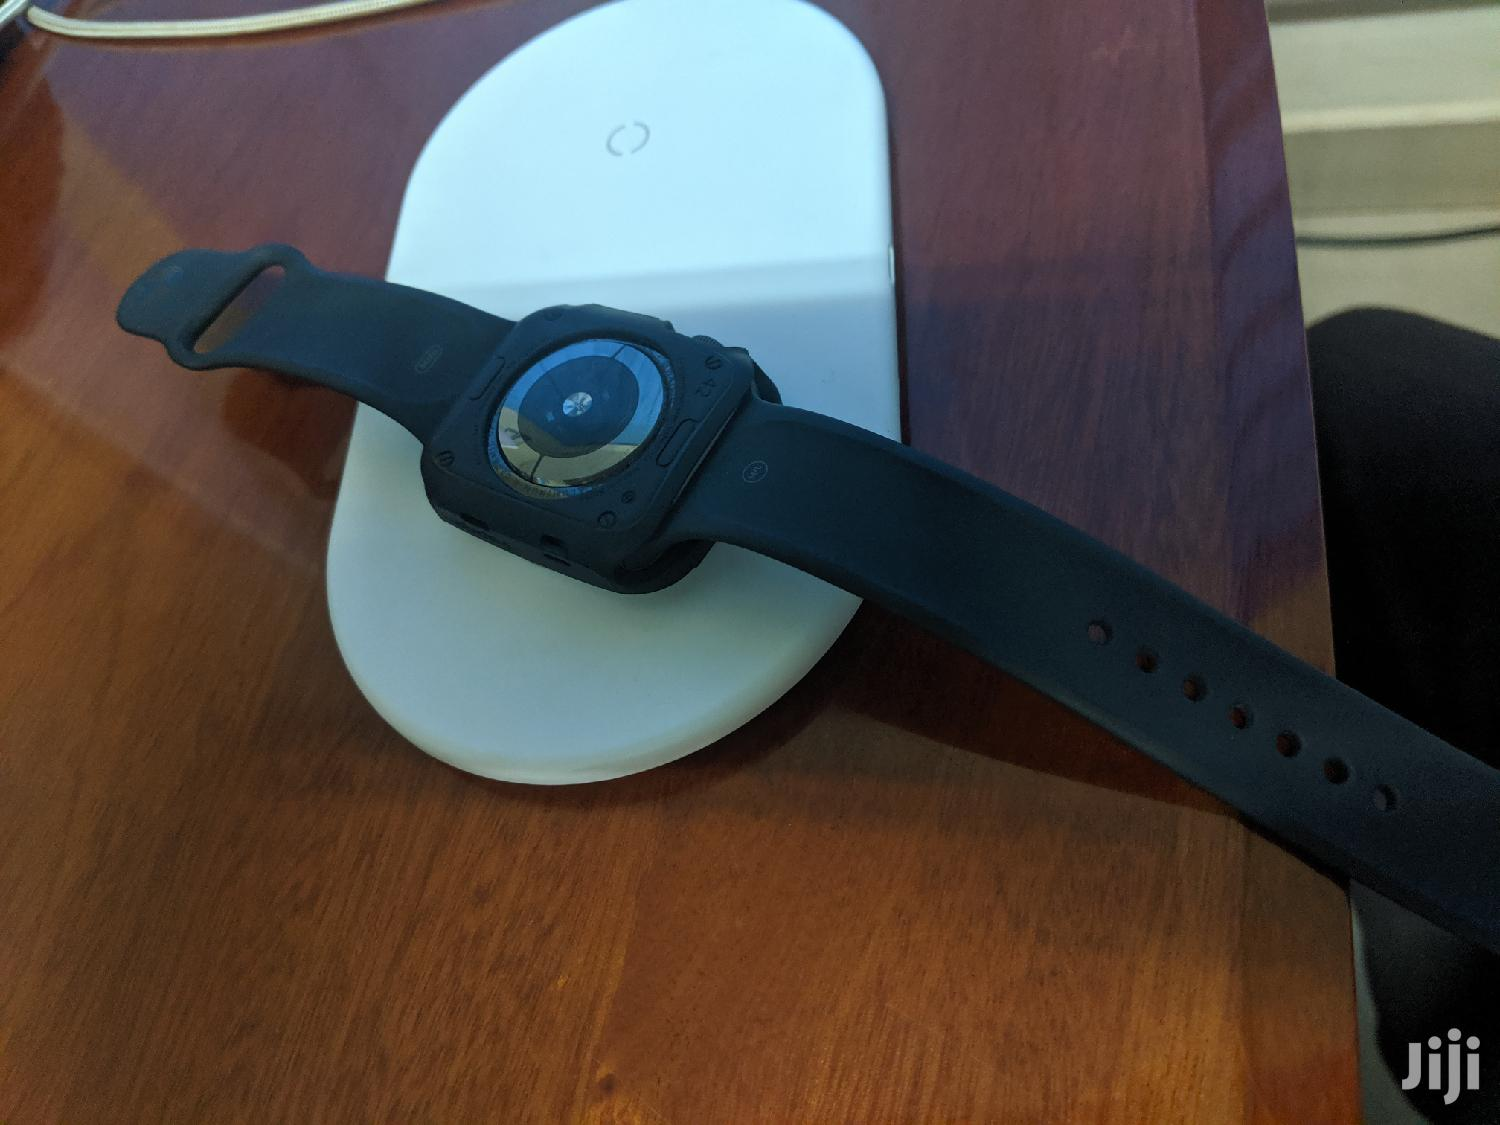 Apple Watch Series 4 | Smart Watches & Trackers for sale in Kampala, Central Region, Uganda